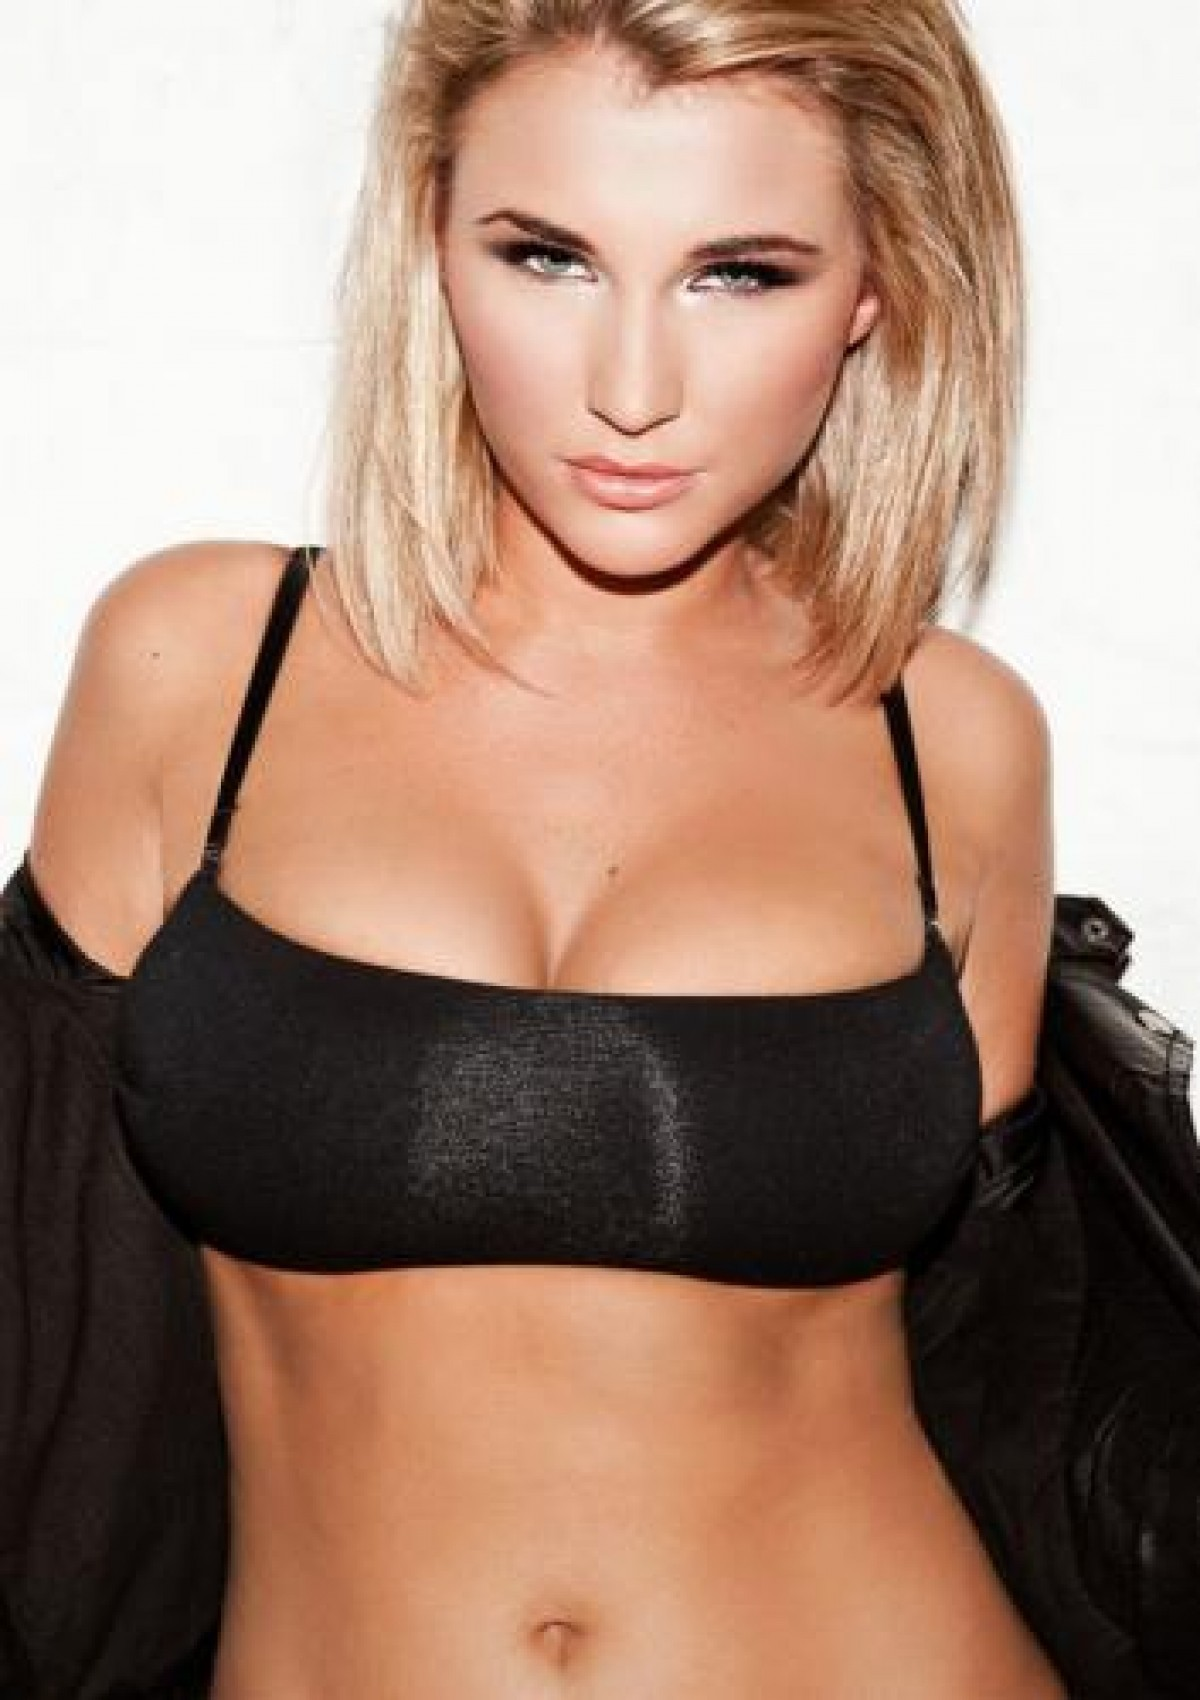 Billie Faiers Iphone Hd